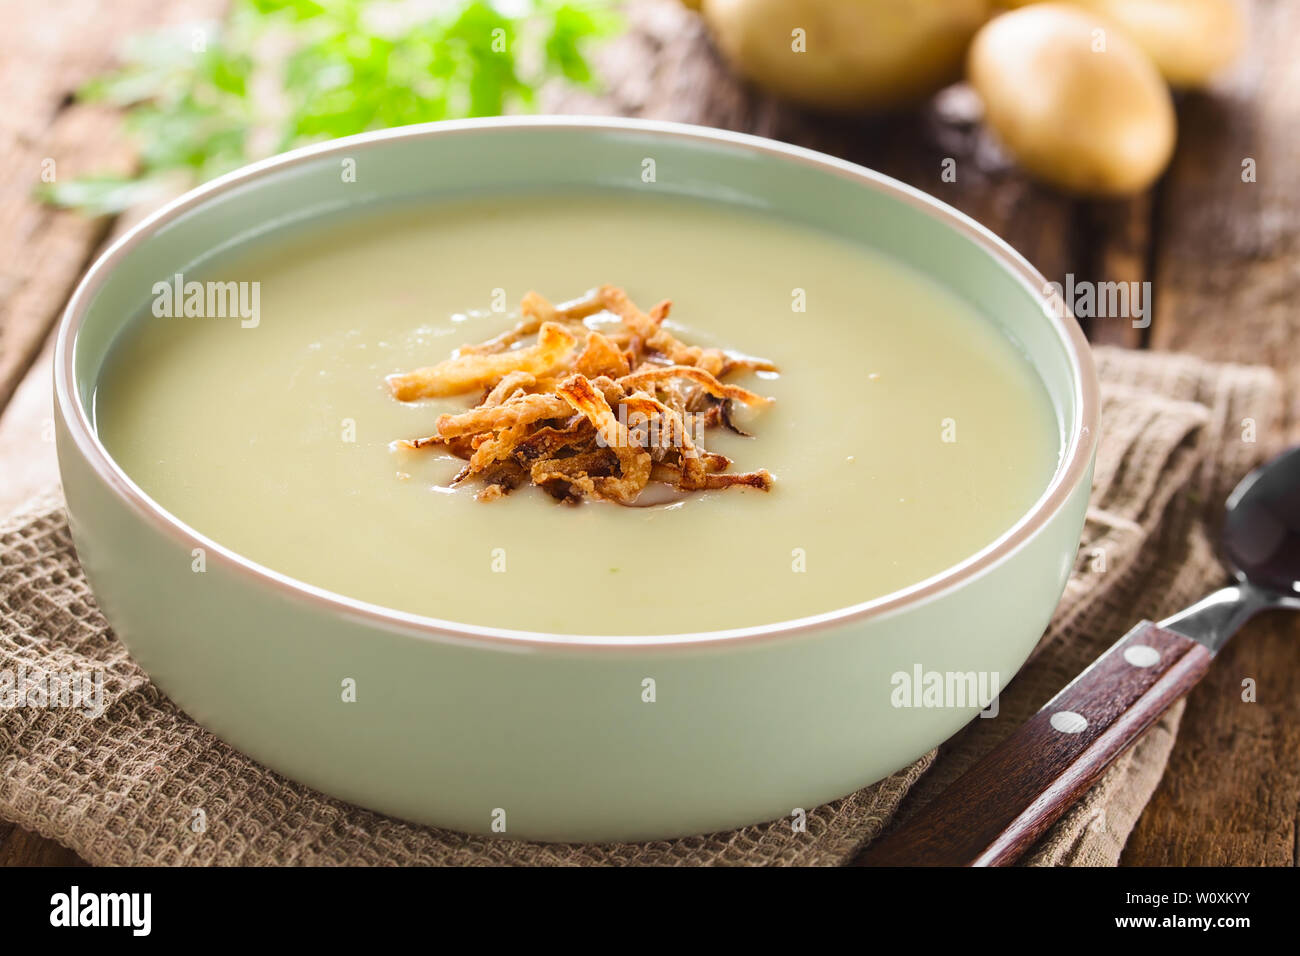 Fresh homemade cream of potato soup in bowl garnished with crispy onion strings, potatoes in the back (Selective Focus) - Stock Image